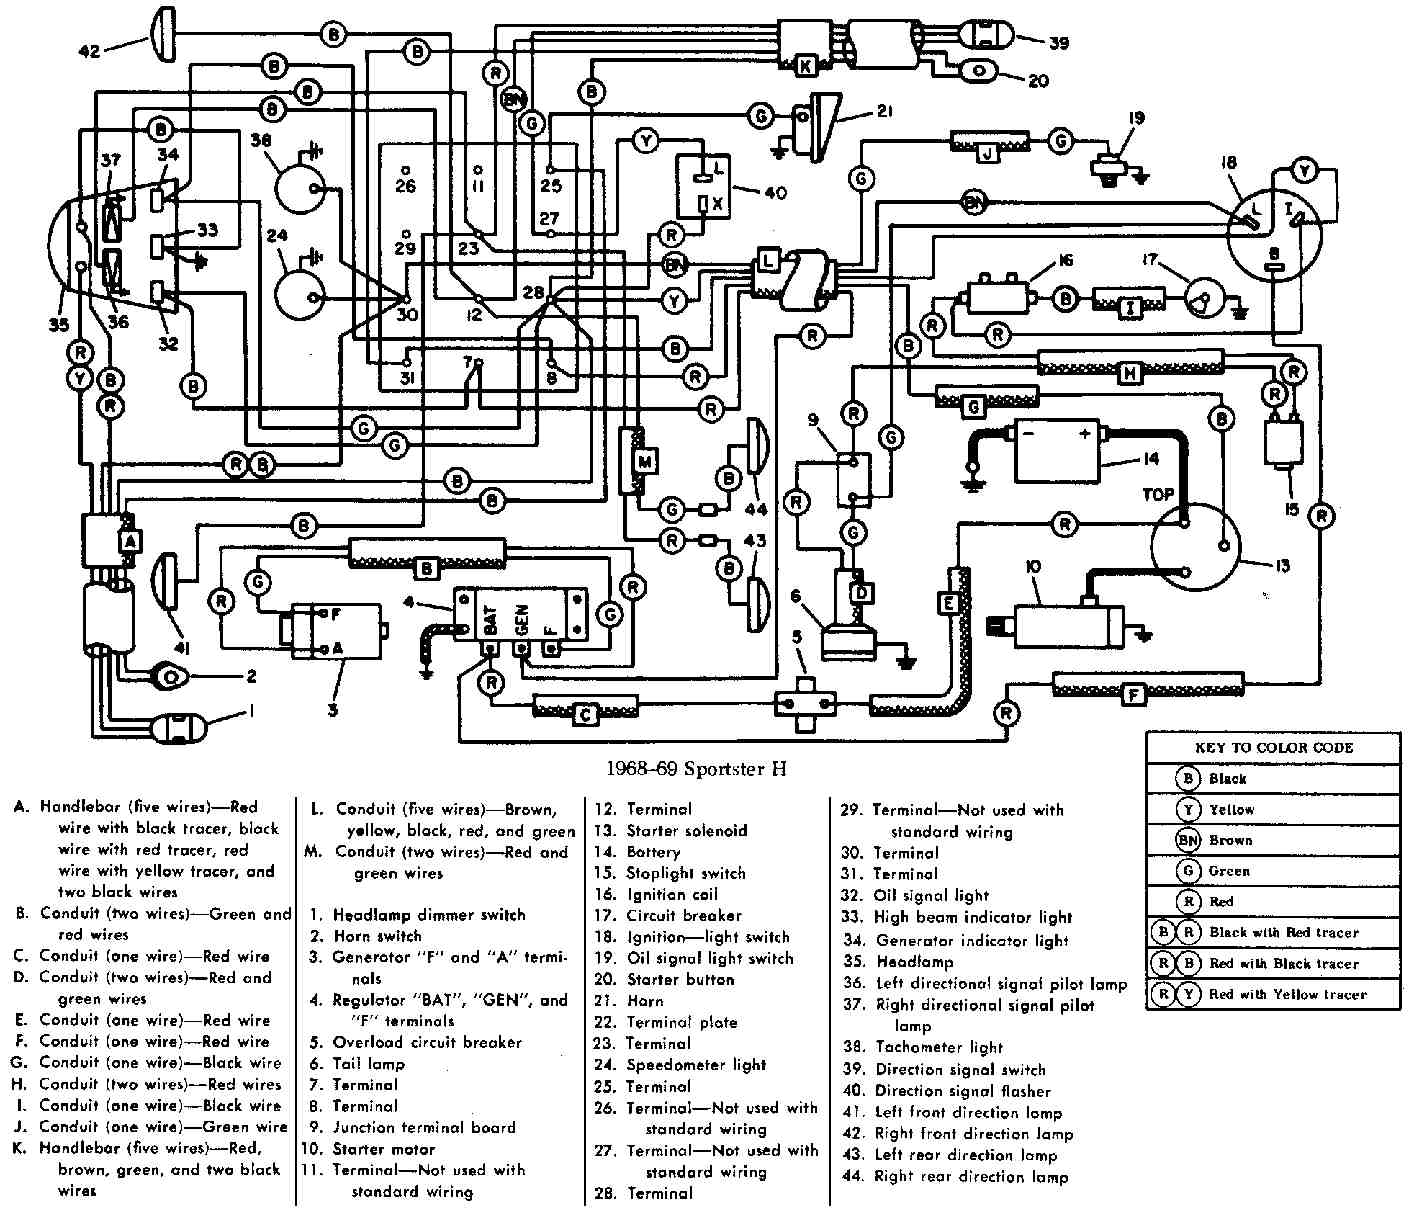 DIAGRAM] 1980 Harley Davidson Wiring Diagram FULL Version HD Quality Wiring  Diagram - BMWDIAGRAMS.LADEPOSIZIONEMISTERI.IT | 99 Softail Standard Wiring Diagram |  | La Deposizione